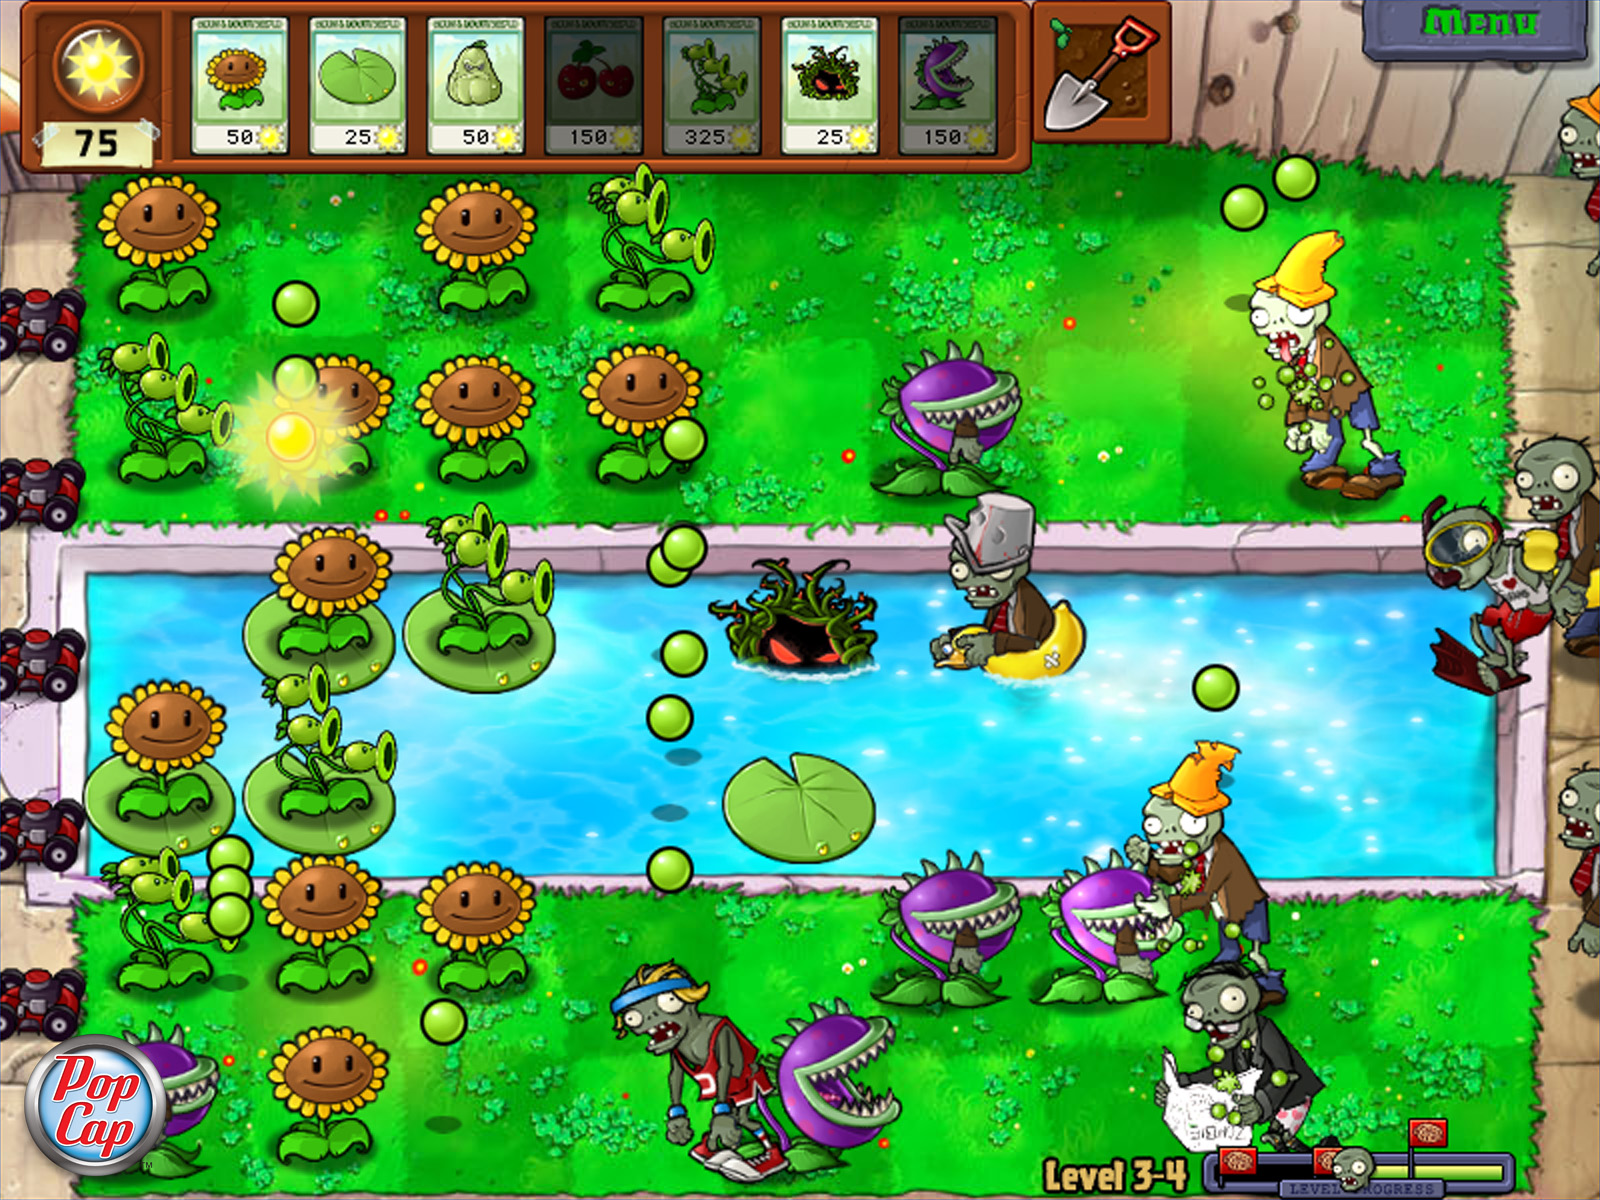 http://www.games.li/Plants-vs-Zombies-online